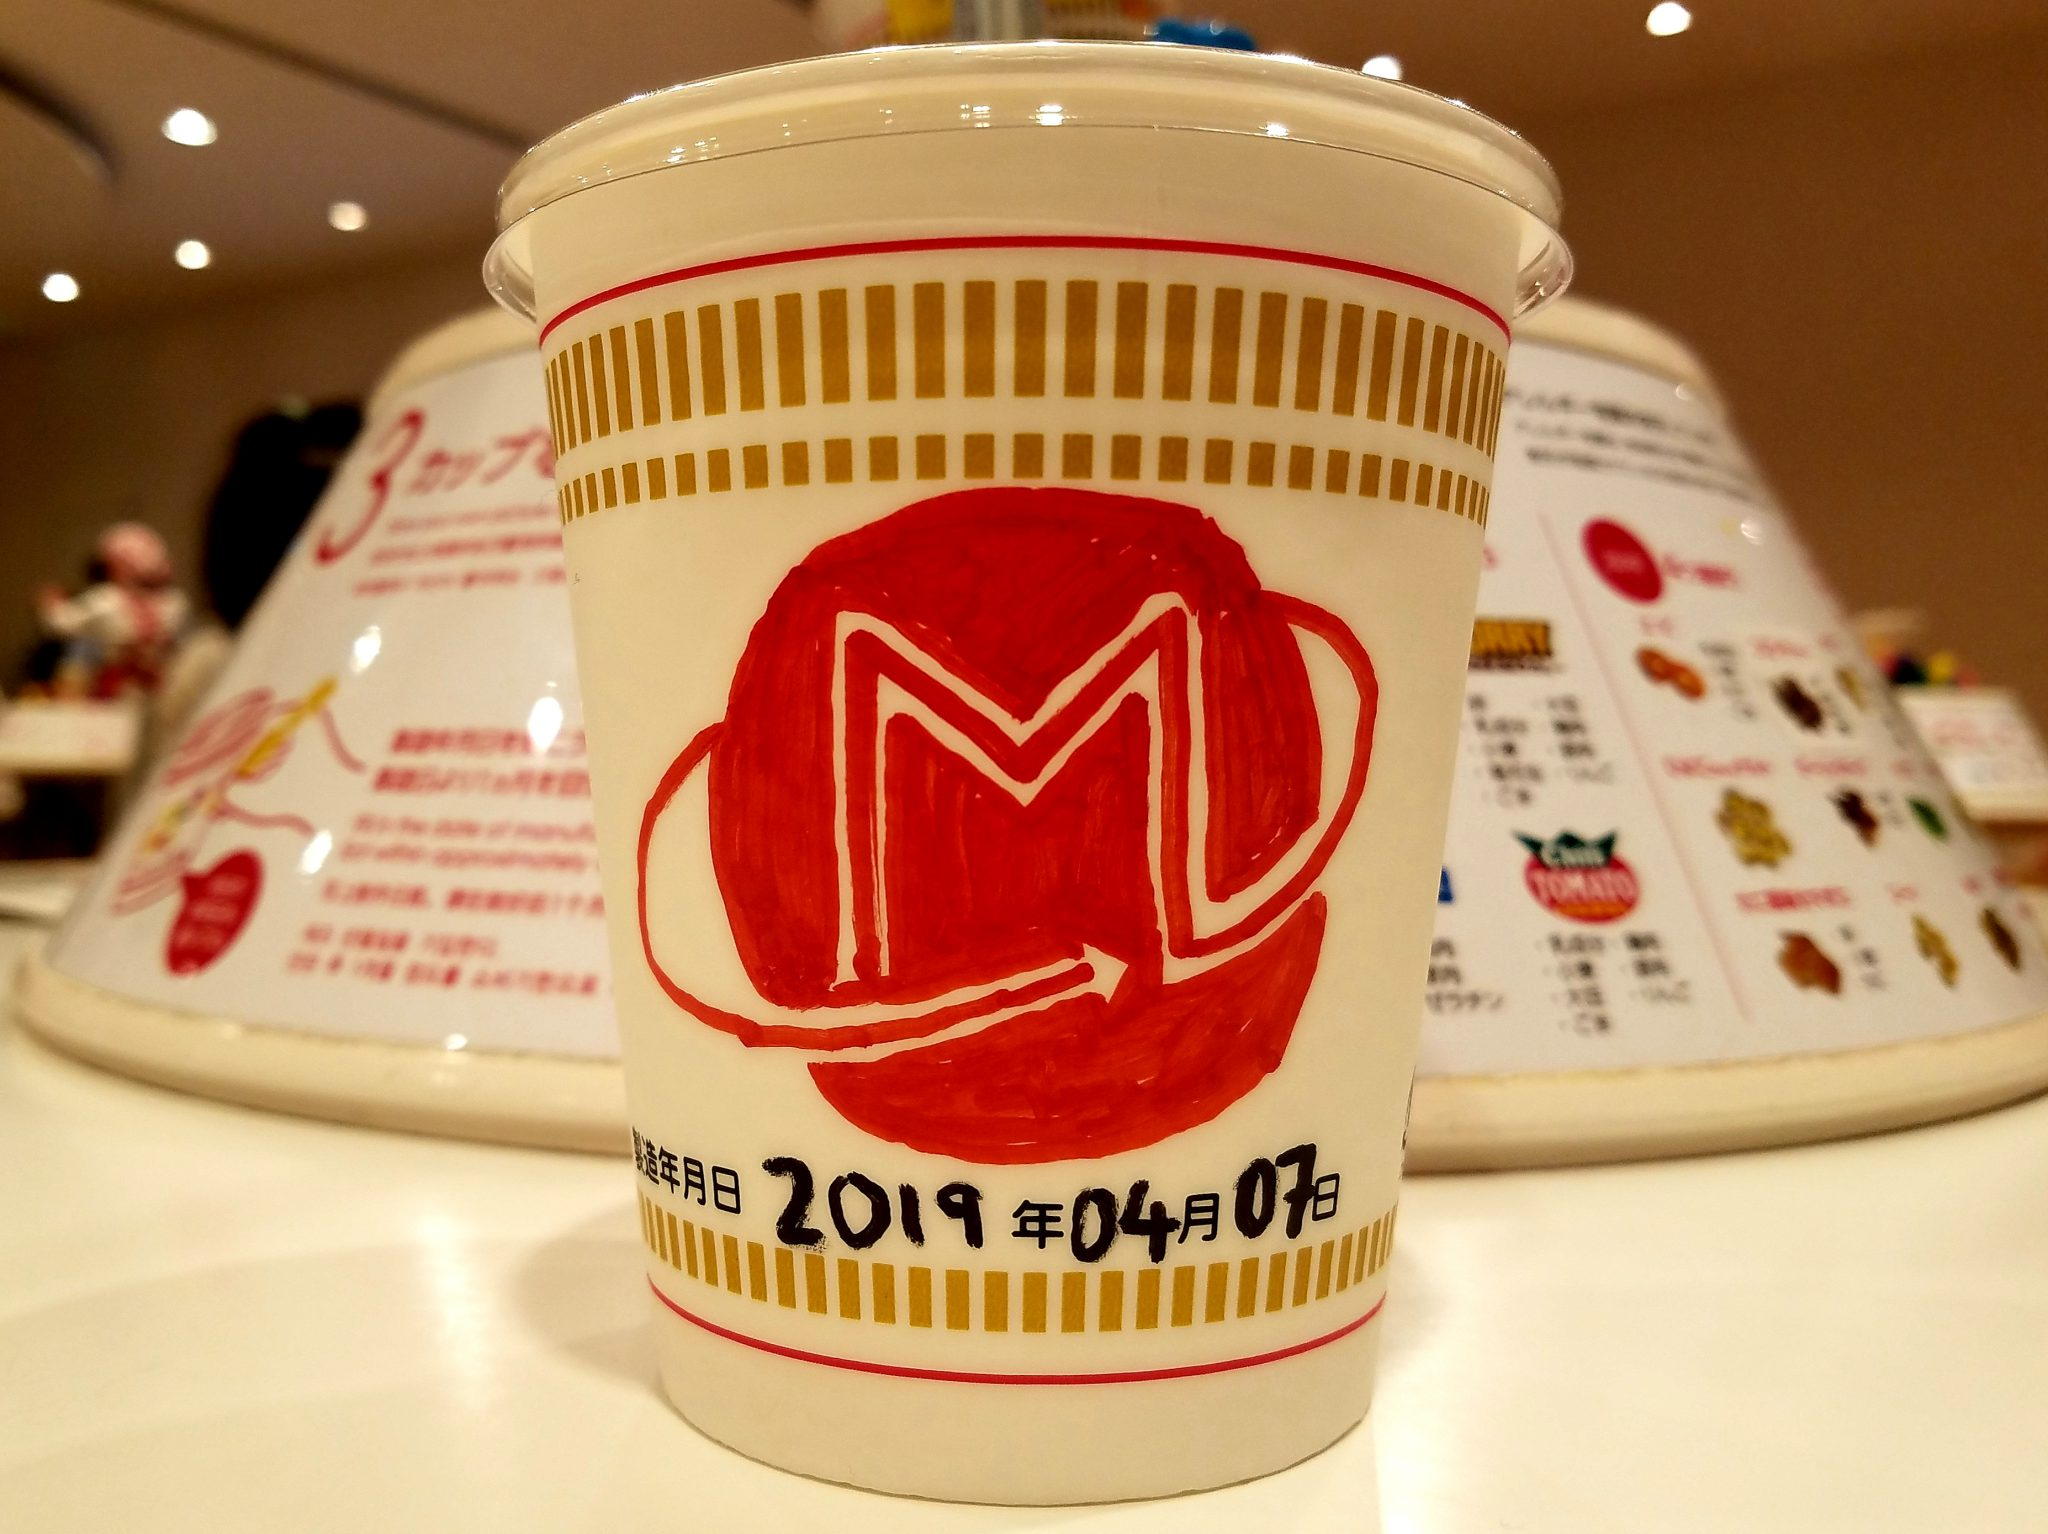 Maction Planet Cup Noodle from the Cup Noodle Museum